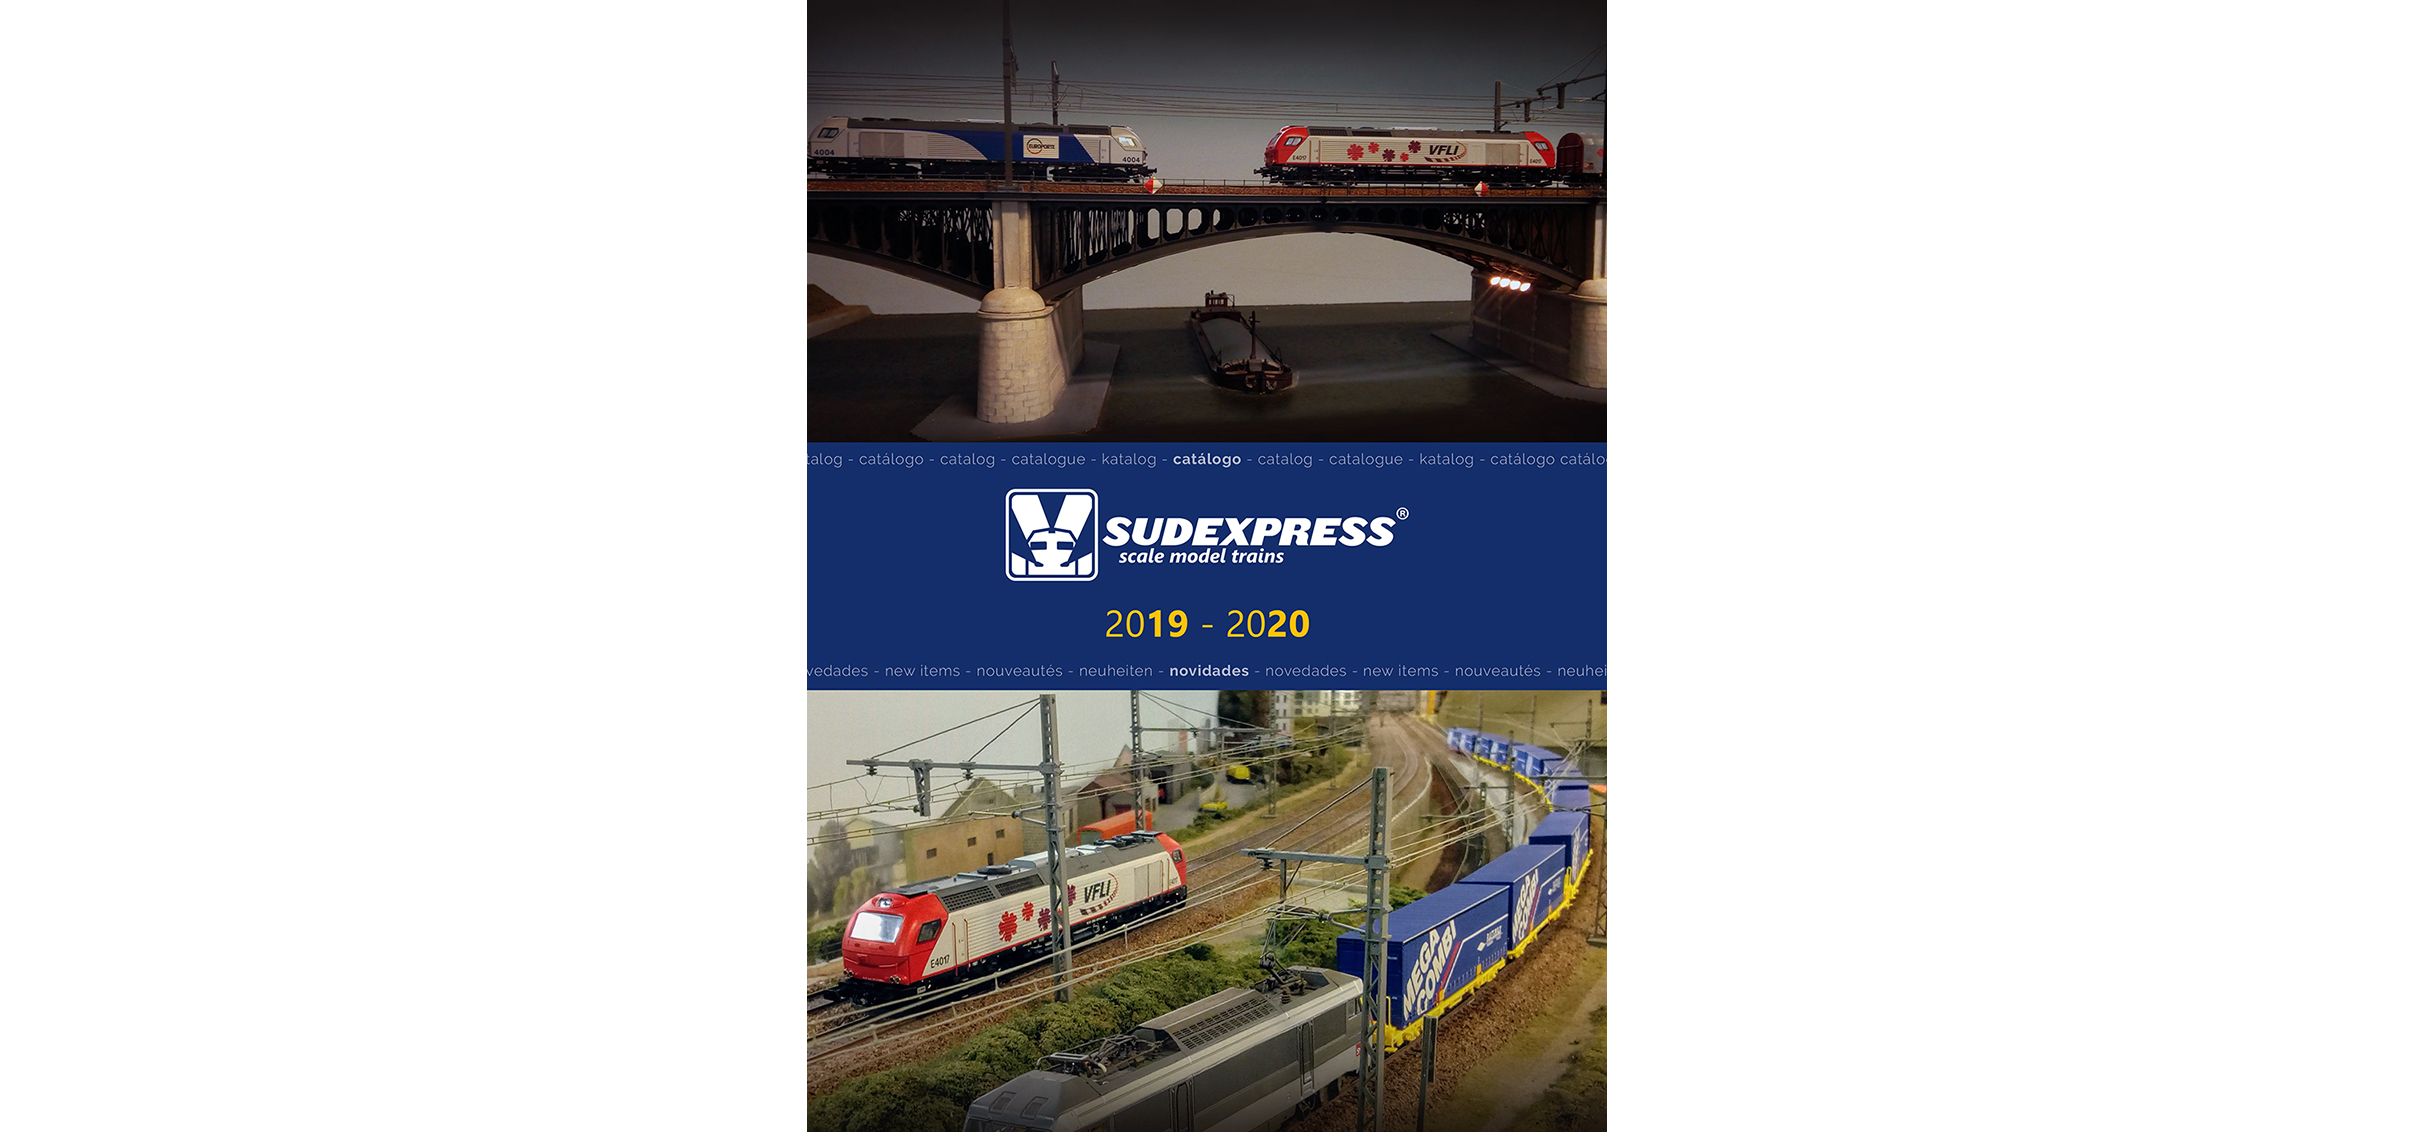 Sudexpress Catalogue 2019 - 2020